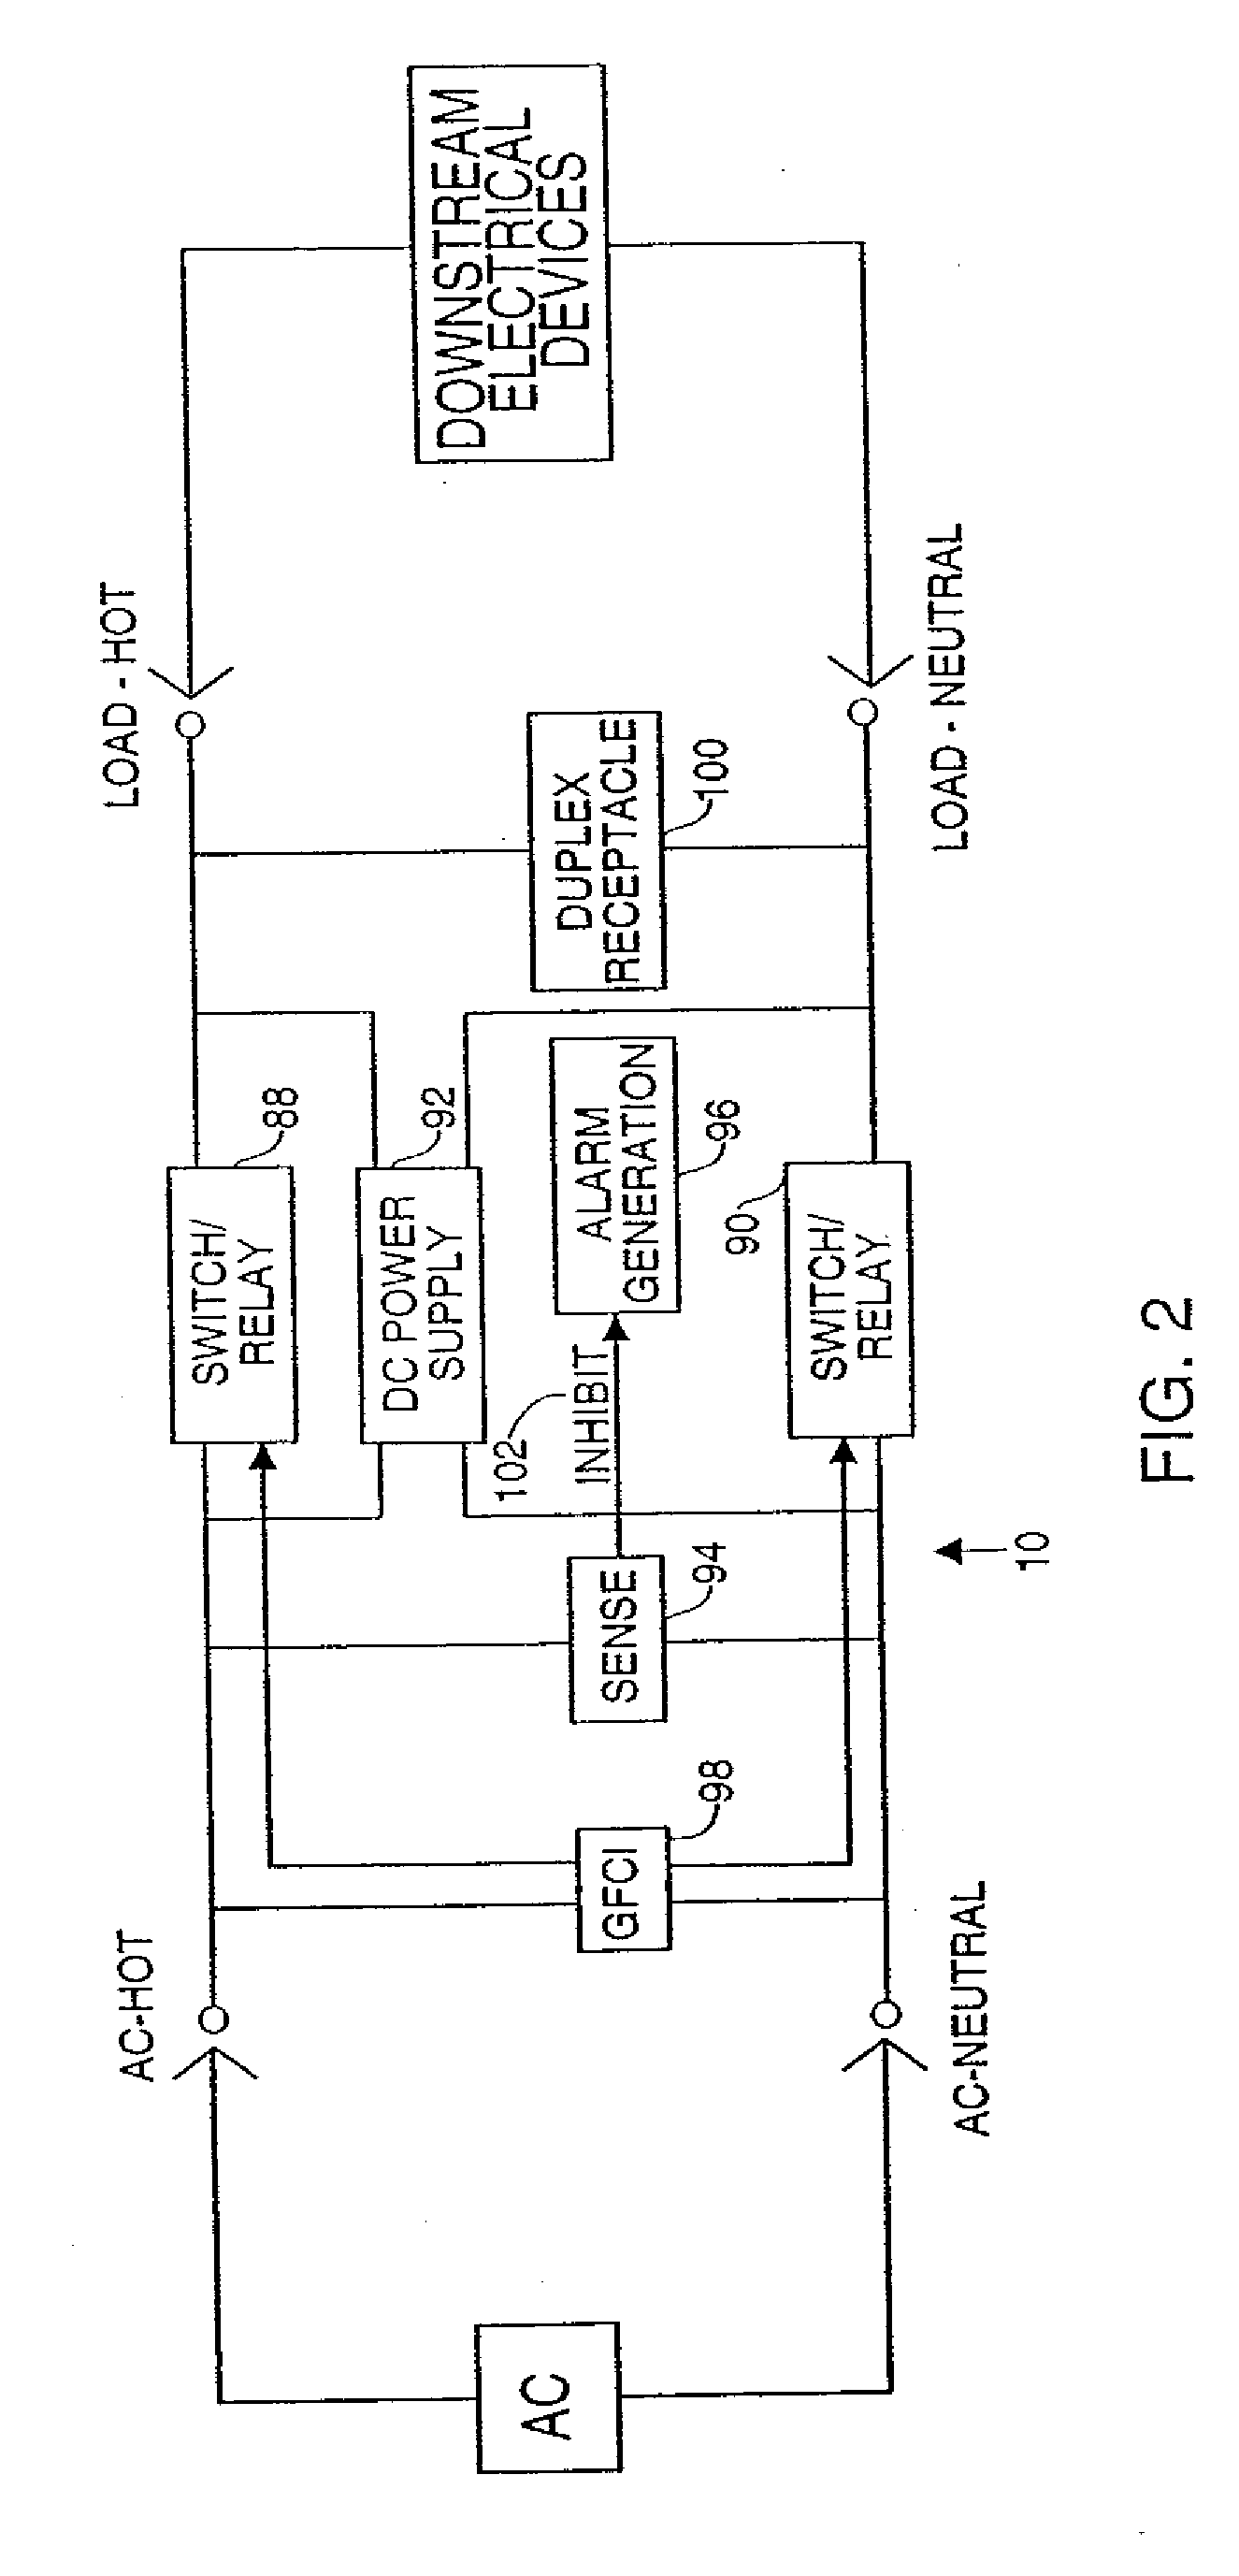 ground fault circuit interrupter receptacle